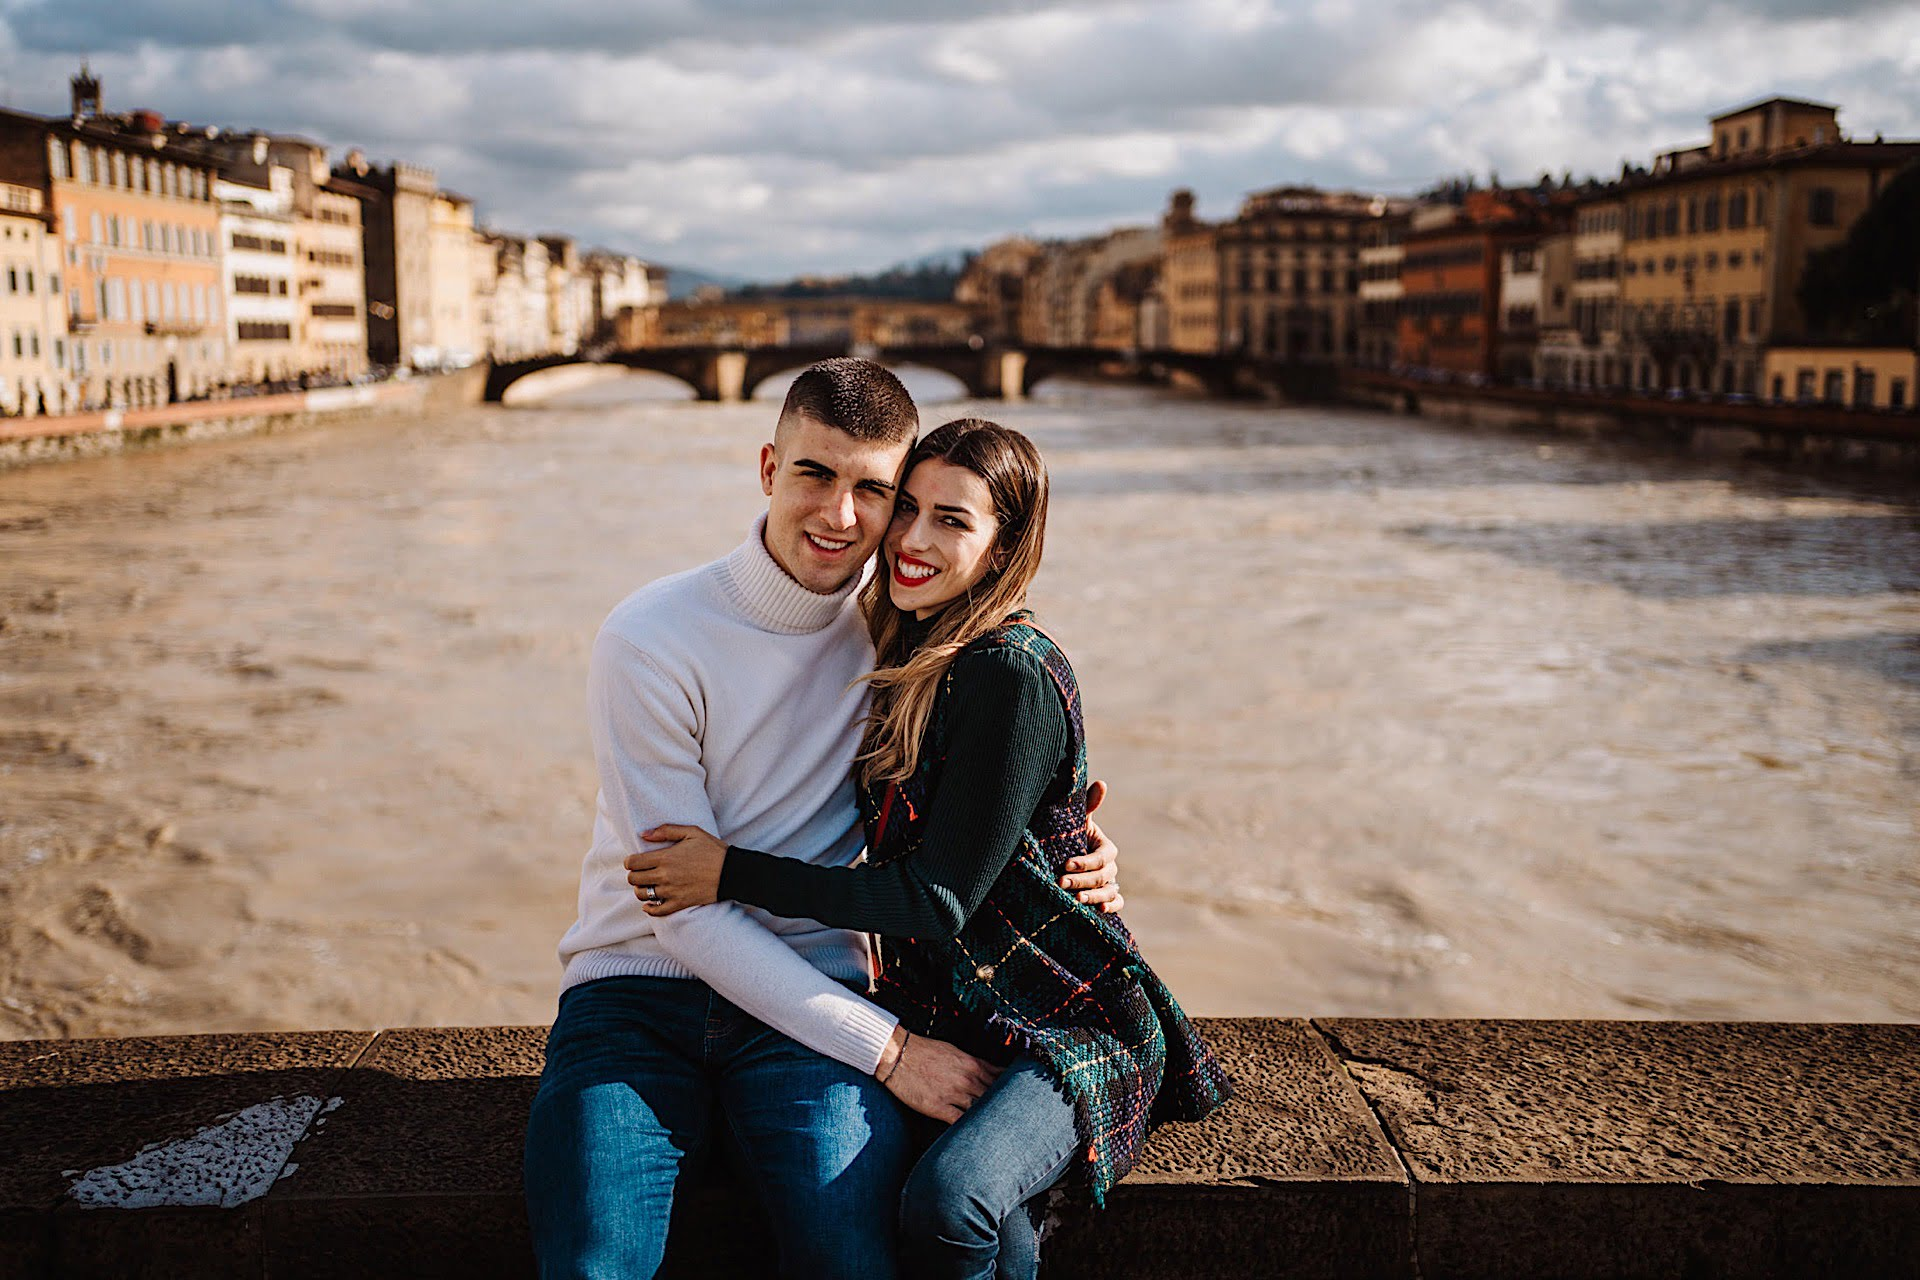 Destination Wedding Photographer in Tuscany, Gianluca And Elisa, Winter Wedding in Florence by Federico Pannacci Wedding Photographer, Federico Pannacci